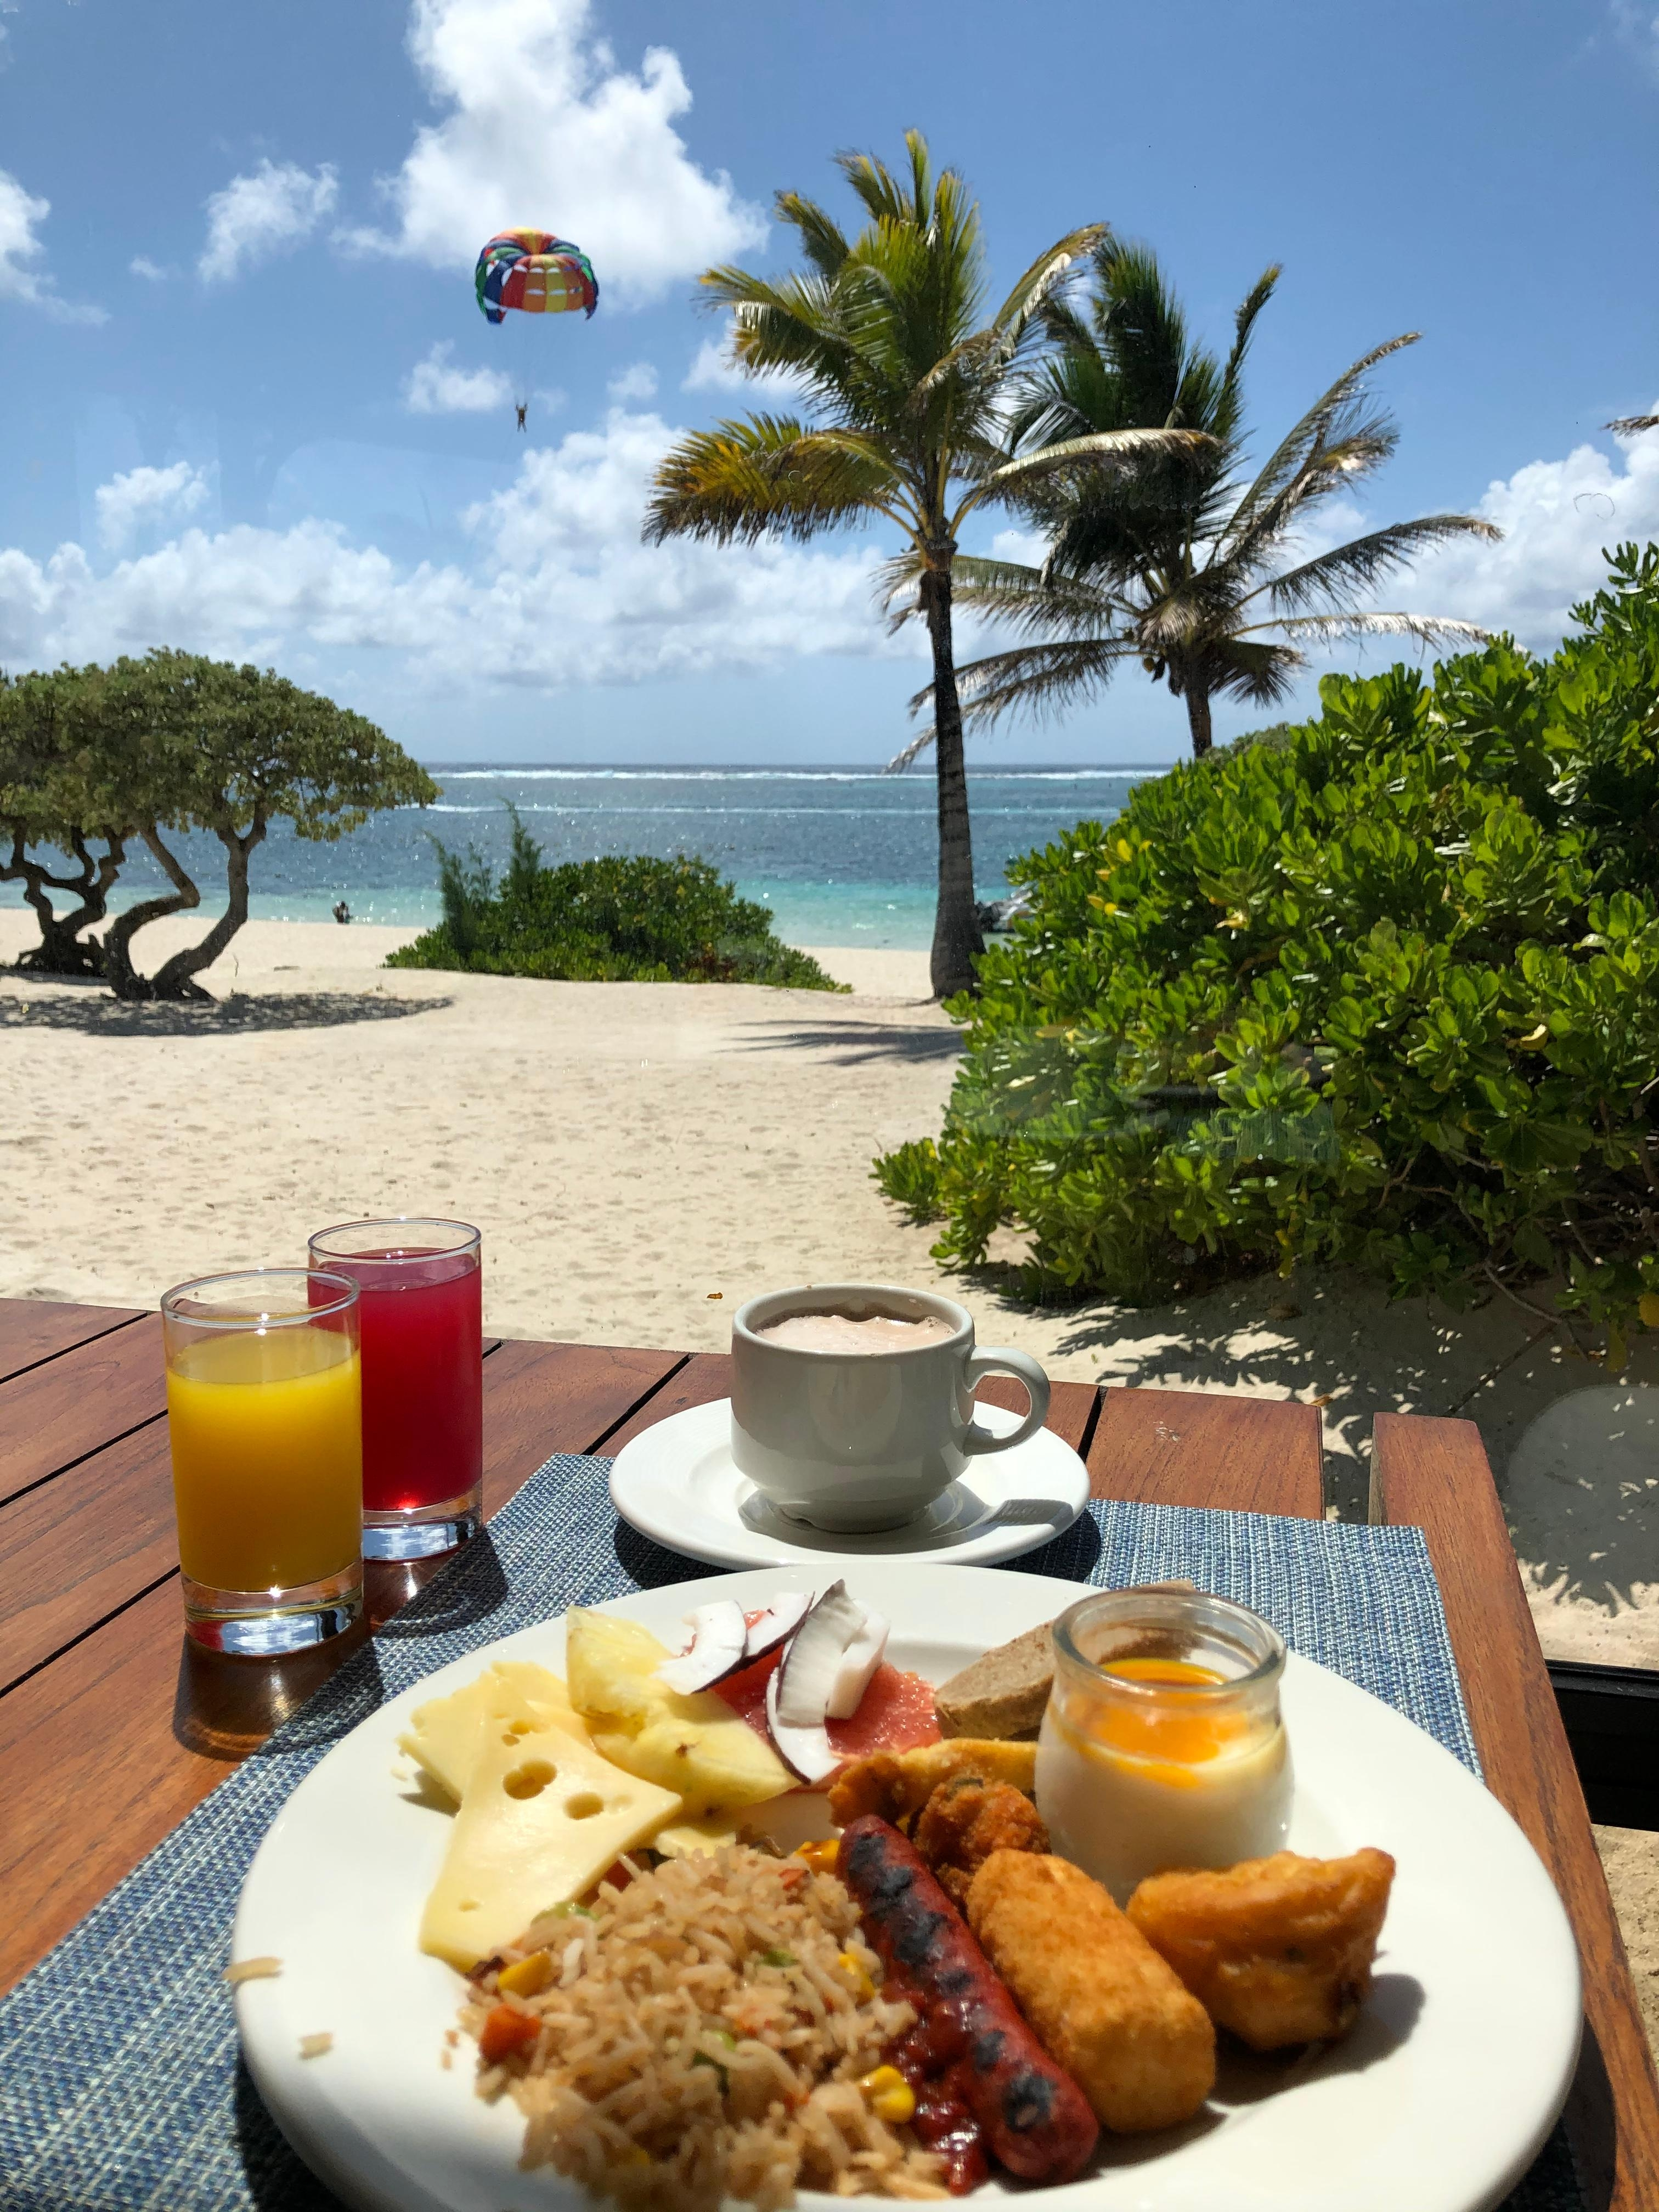 #mauritius #travel #paradise #BreakfastWithAView